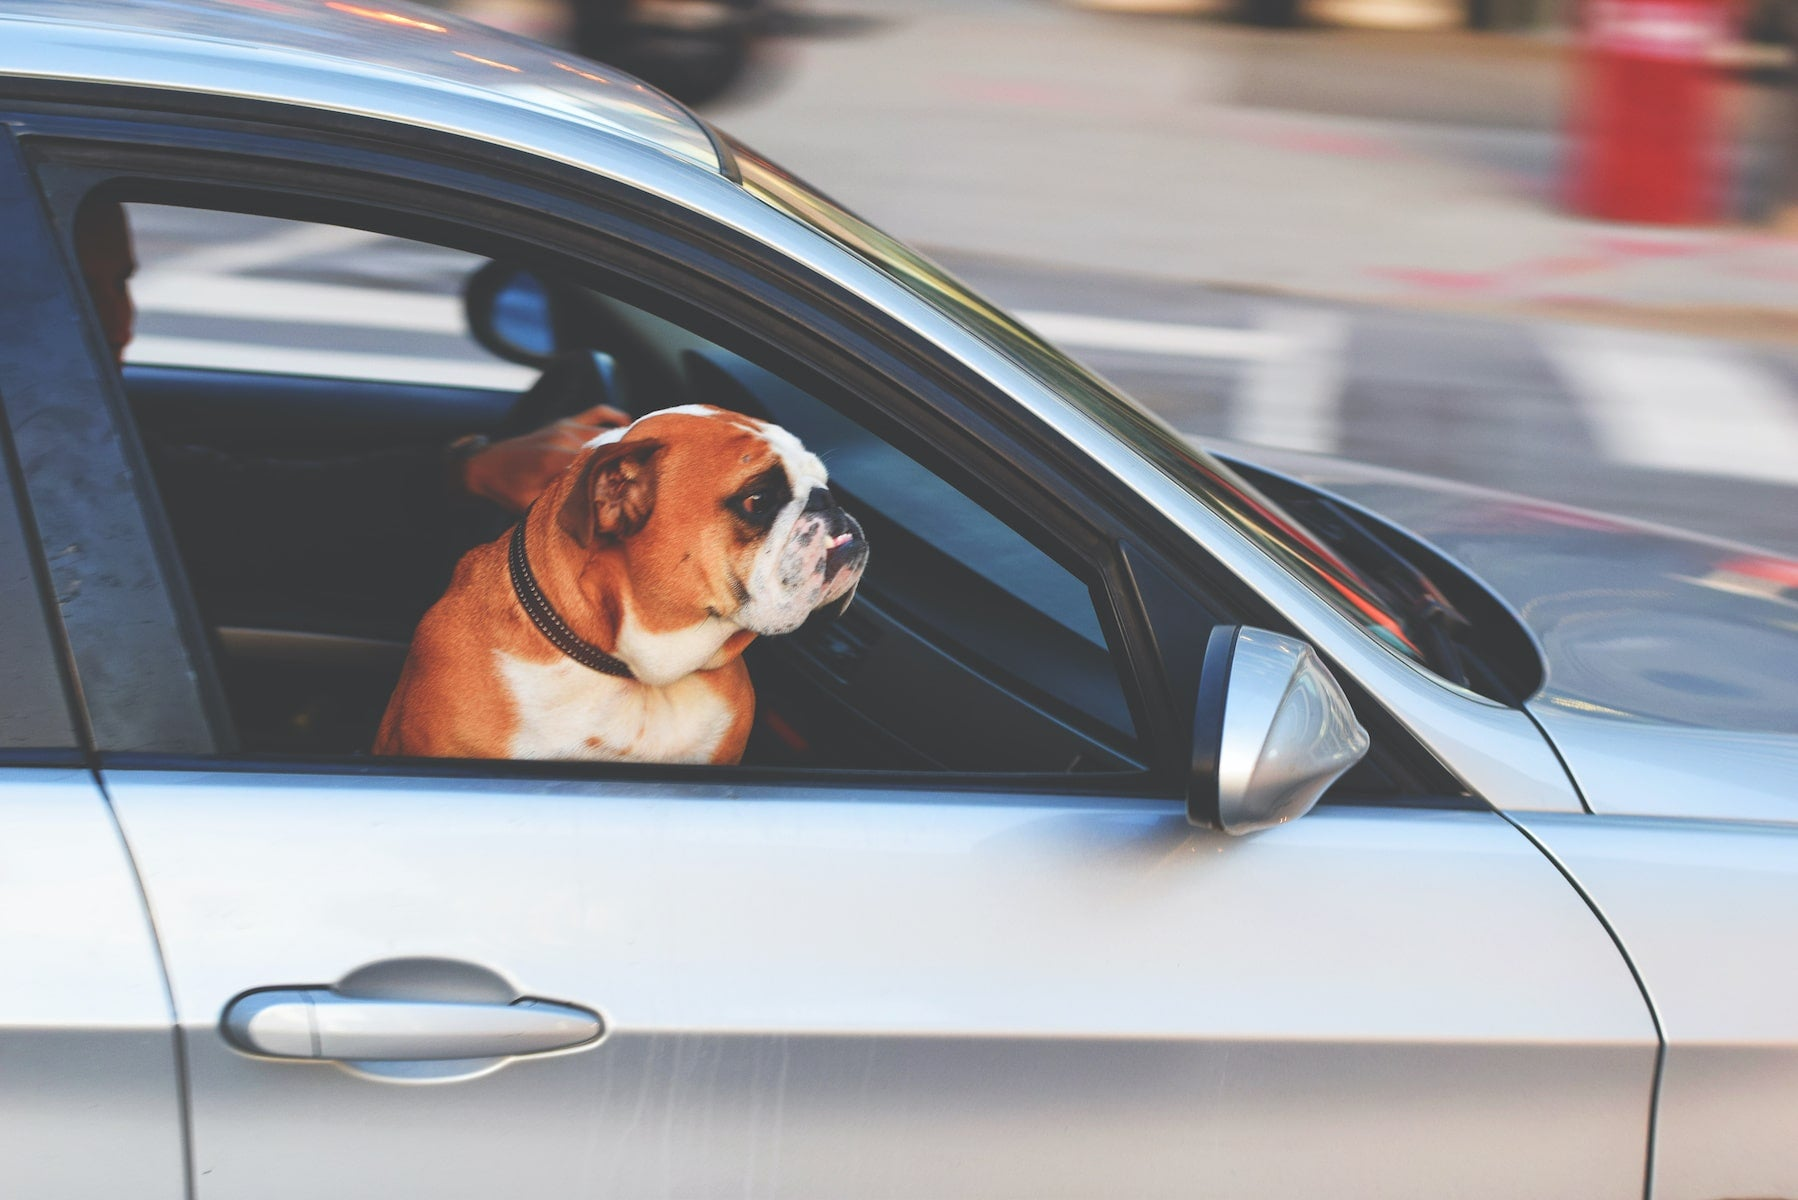 adorable dog traveling with owner across country in a car